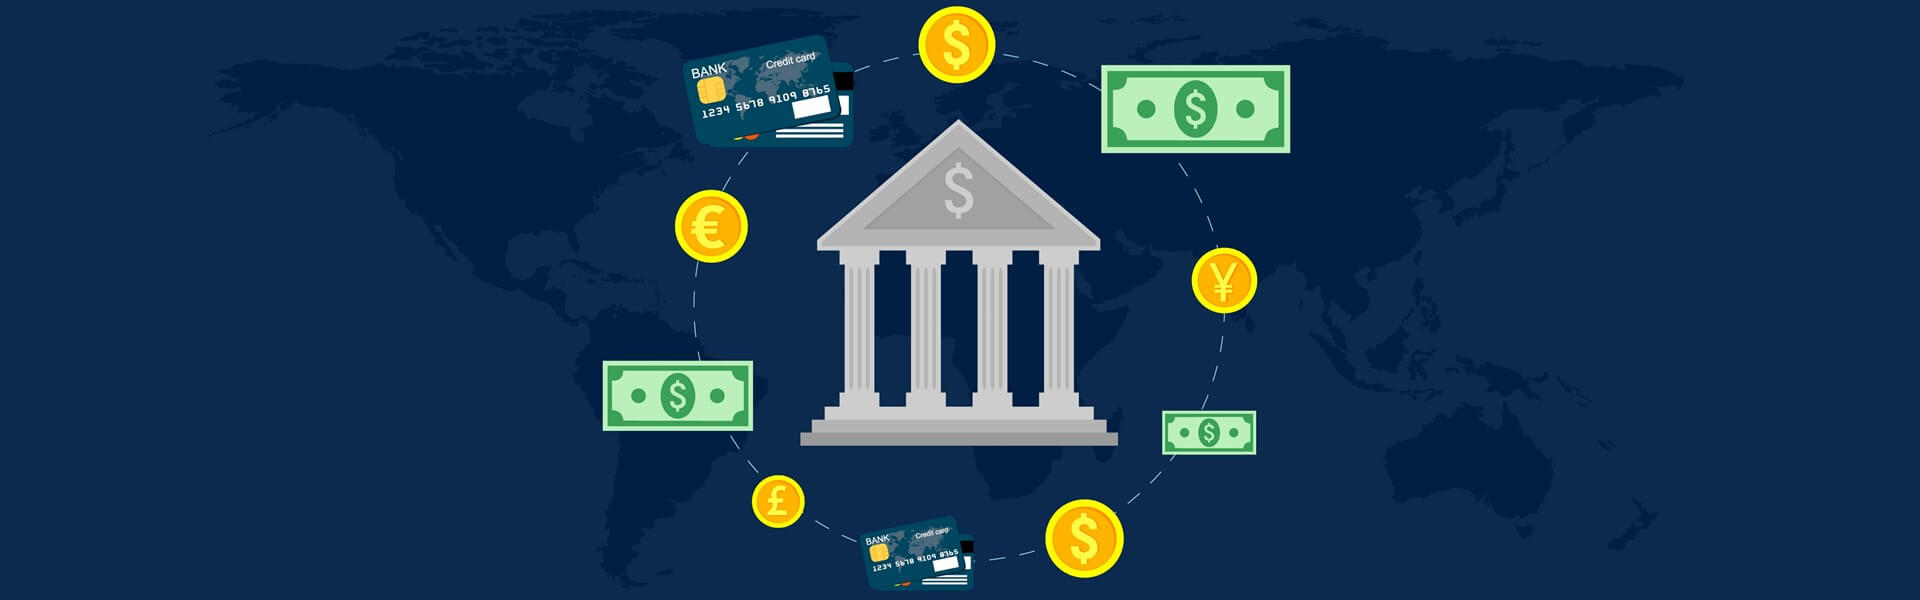 Transition for a Leading Global Bank